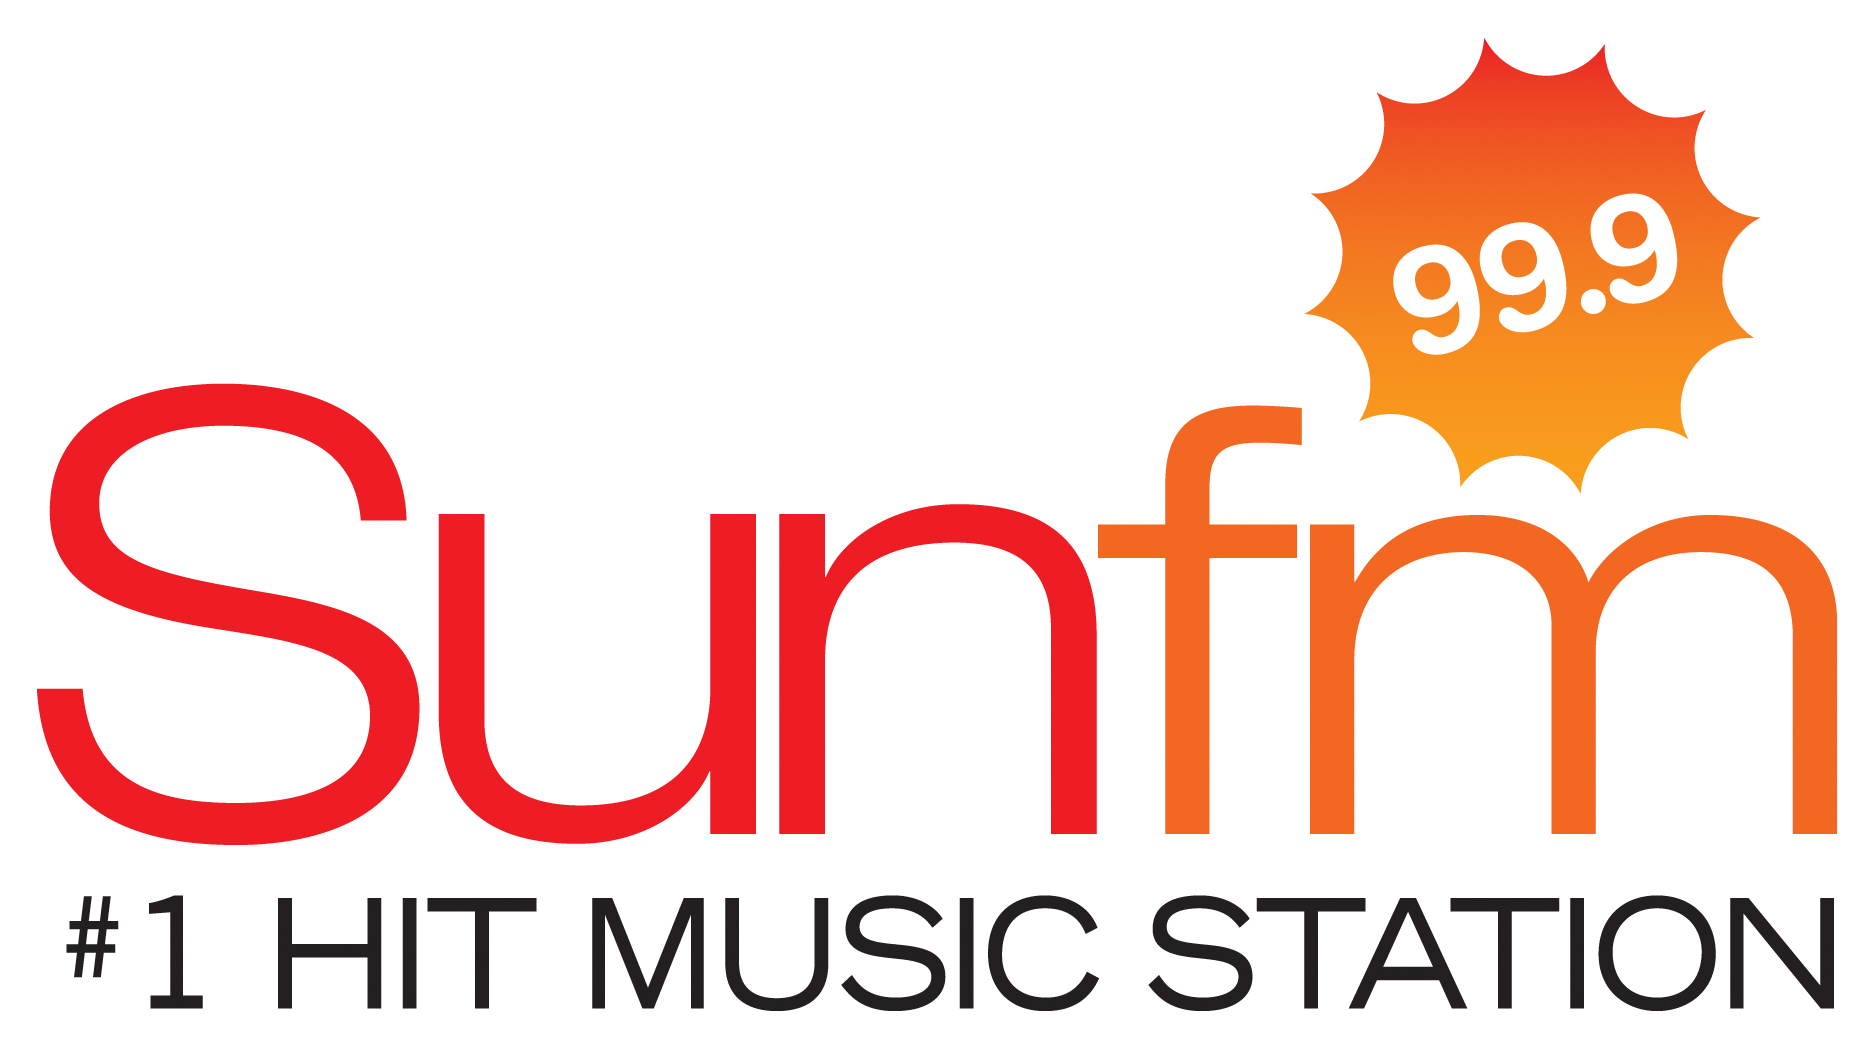 SUNFM_999_Logo_Colour.jpg